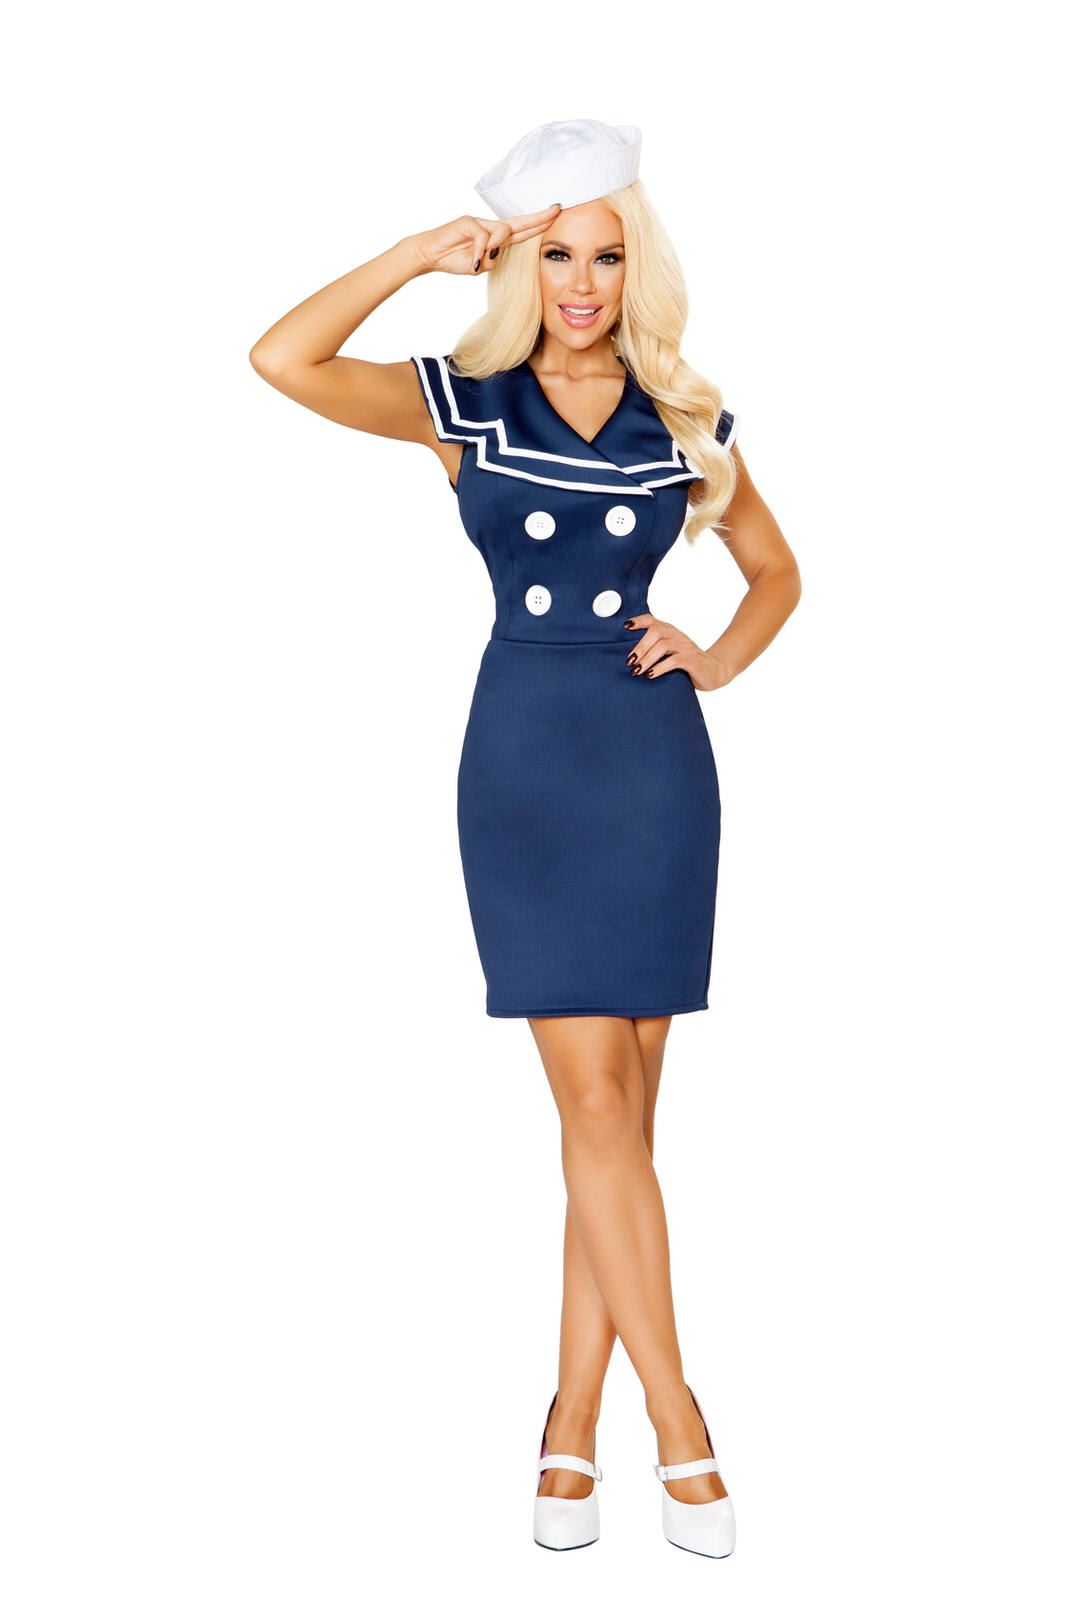 Adult Classy Sailor Woman Costume ...  sc 1 st  The Costume Land & Adult Classy Sailor Woman Costume | $51.99 | The Costume Land